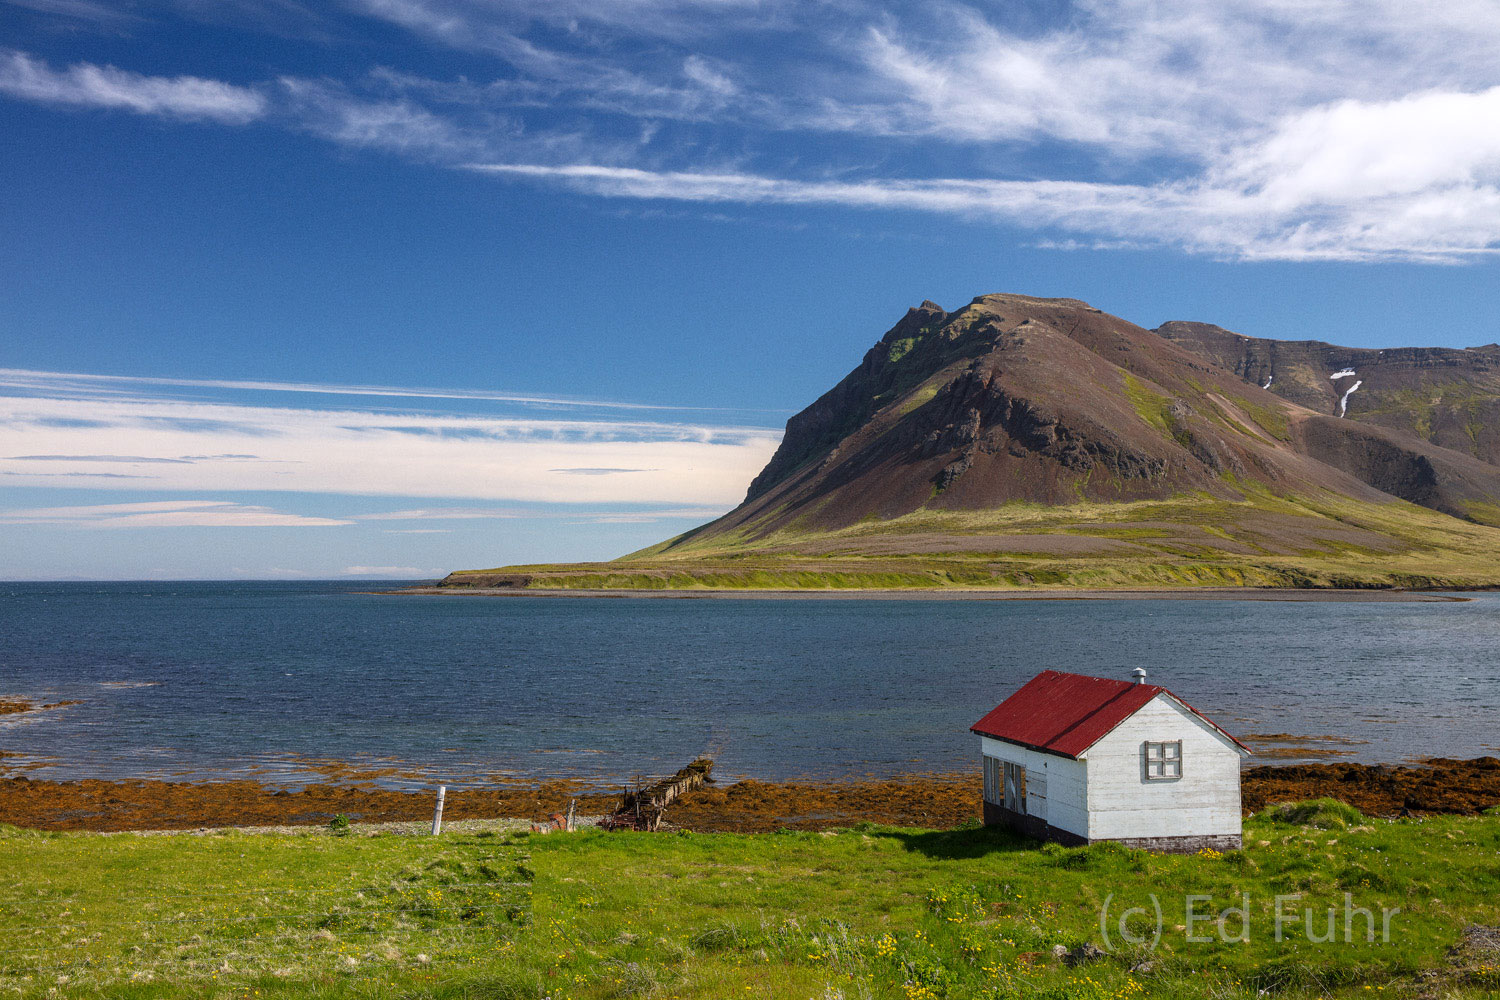 A beautiful harbor and bay, Kolgrafafjordur, provides a graceful introduction to the beauty of nearby Snaefellsness Peninsula...